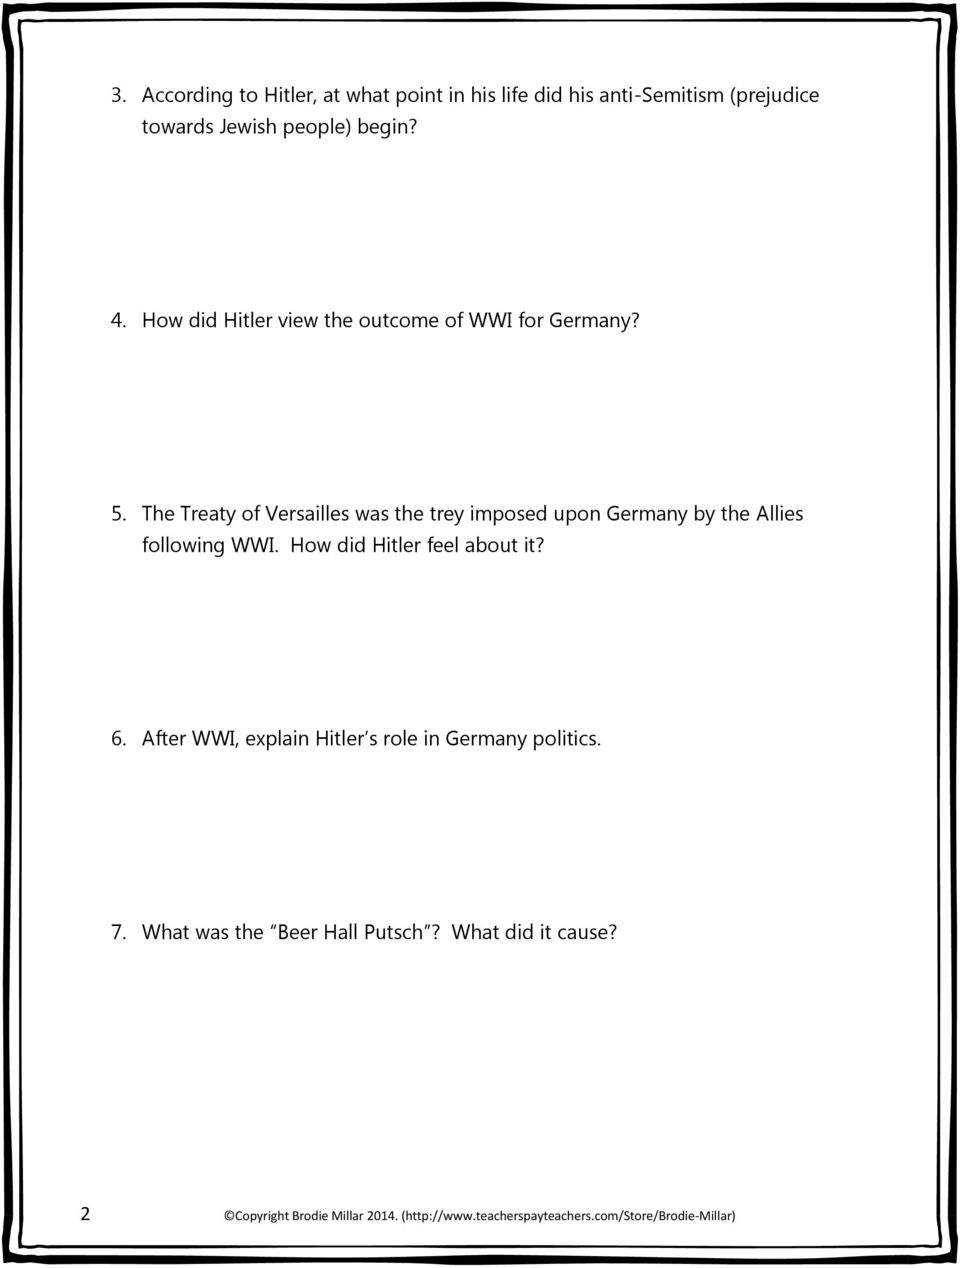 The Treaty of Versailles was the trey imposed upon Germany by the Allies following WWI. How did Hitler feel about it? 6.